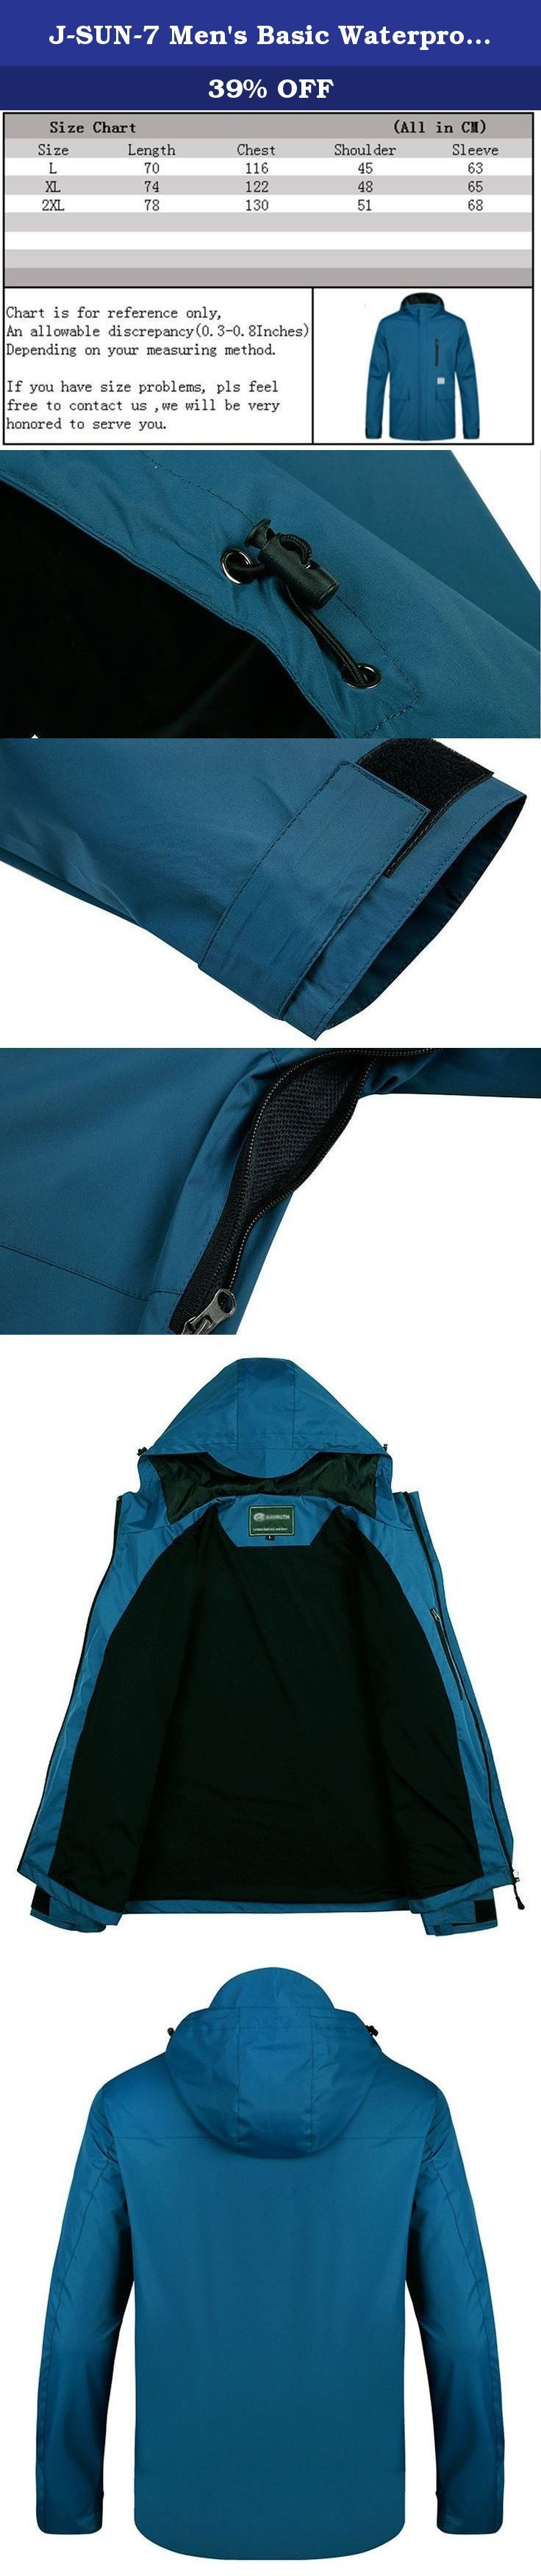 J-SUN-7 Men's Basic Waterproof Outdoor Sport Jacket Coat(Light Blue,US XL/AsianXL). A Letter to Customer J-SUN-7 Fashion Store aims to provide the best products and service for you and make your life more convenient & brilliant. To ensure what you received works in good condition, all the products we sell from manufacturing - stocking - packing - shipping have passed strict quality test. All we want is to serve our customers well and make you feel surprised when you get the item. If you…